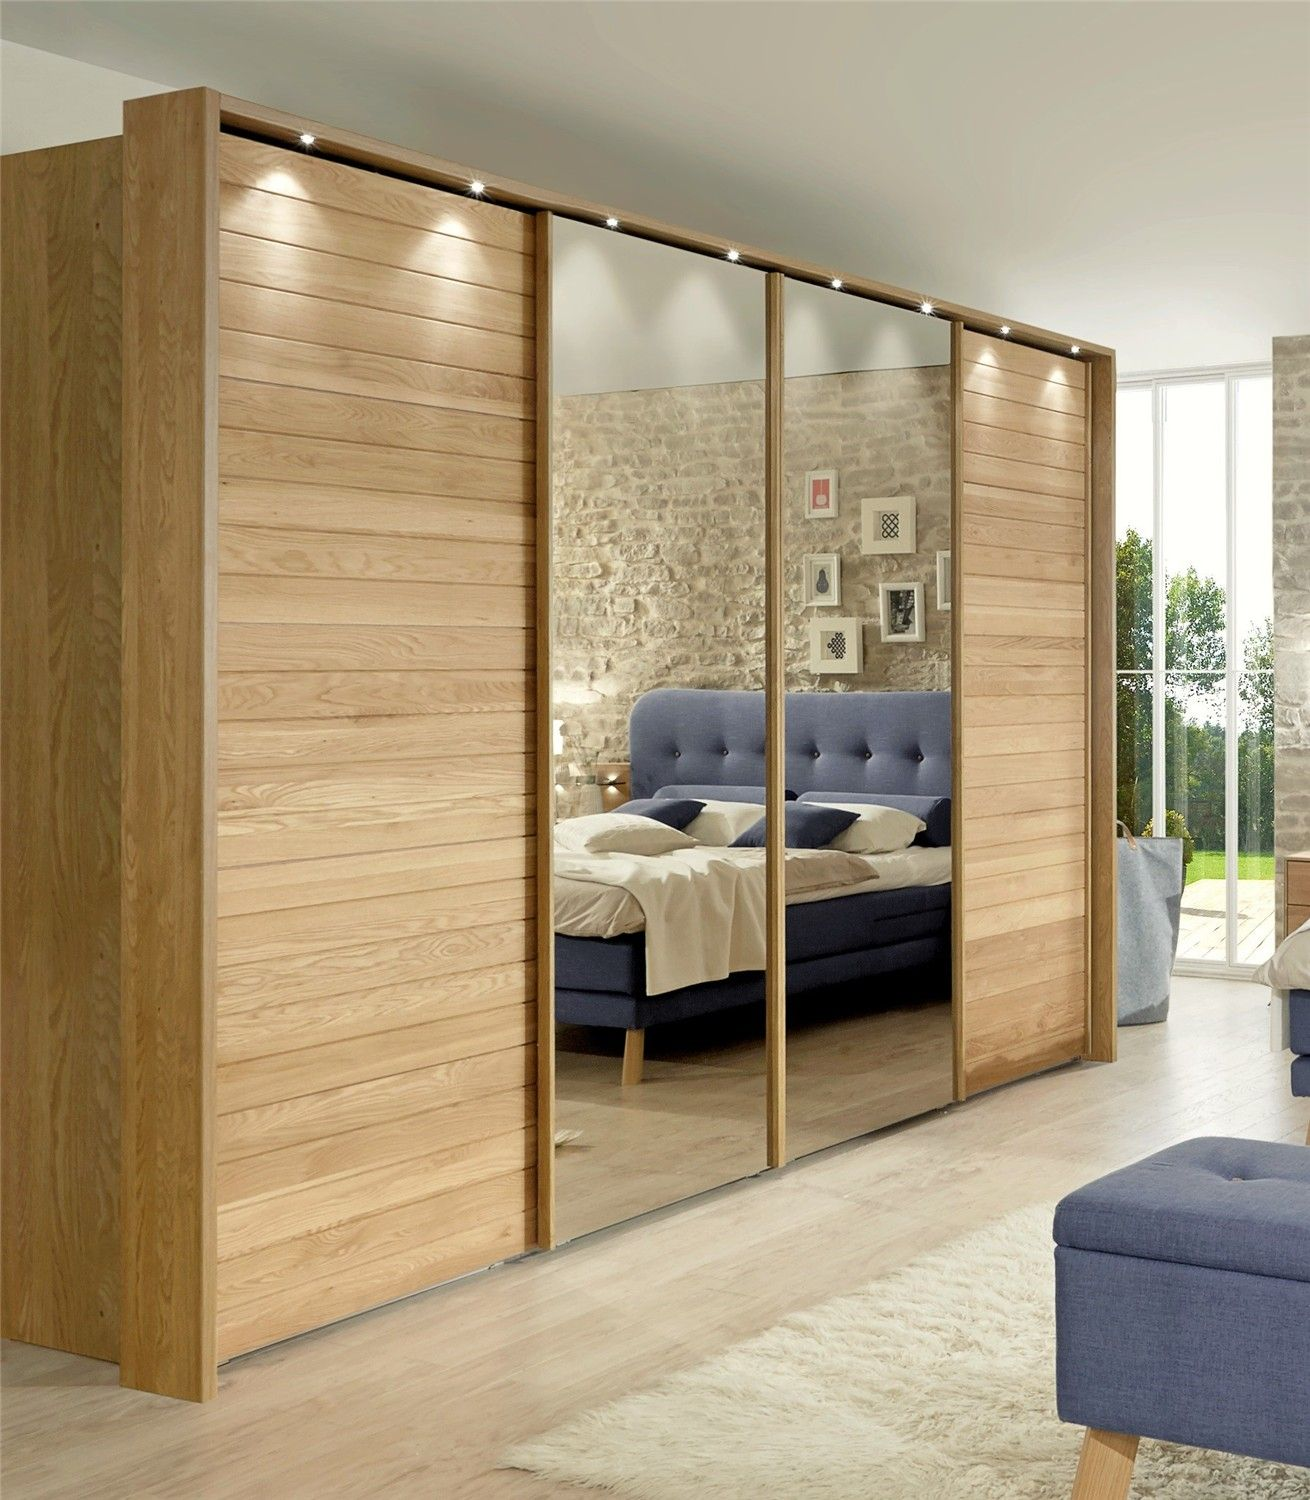 Bedroom Closets And Wardrobes: Pin By Sandeep Veer On Wardrobes